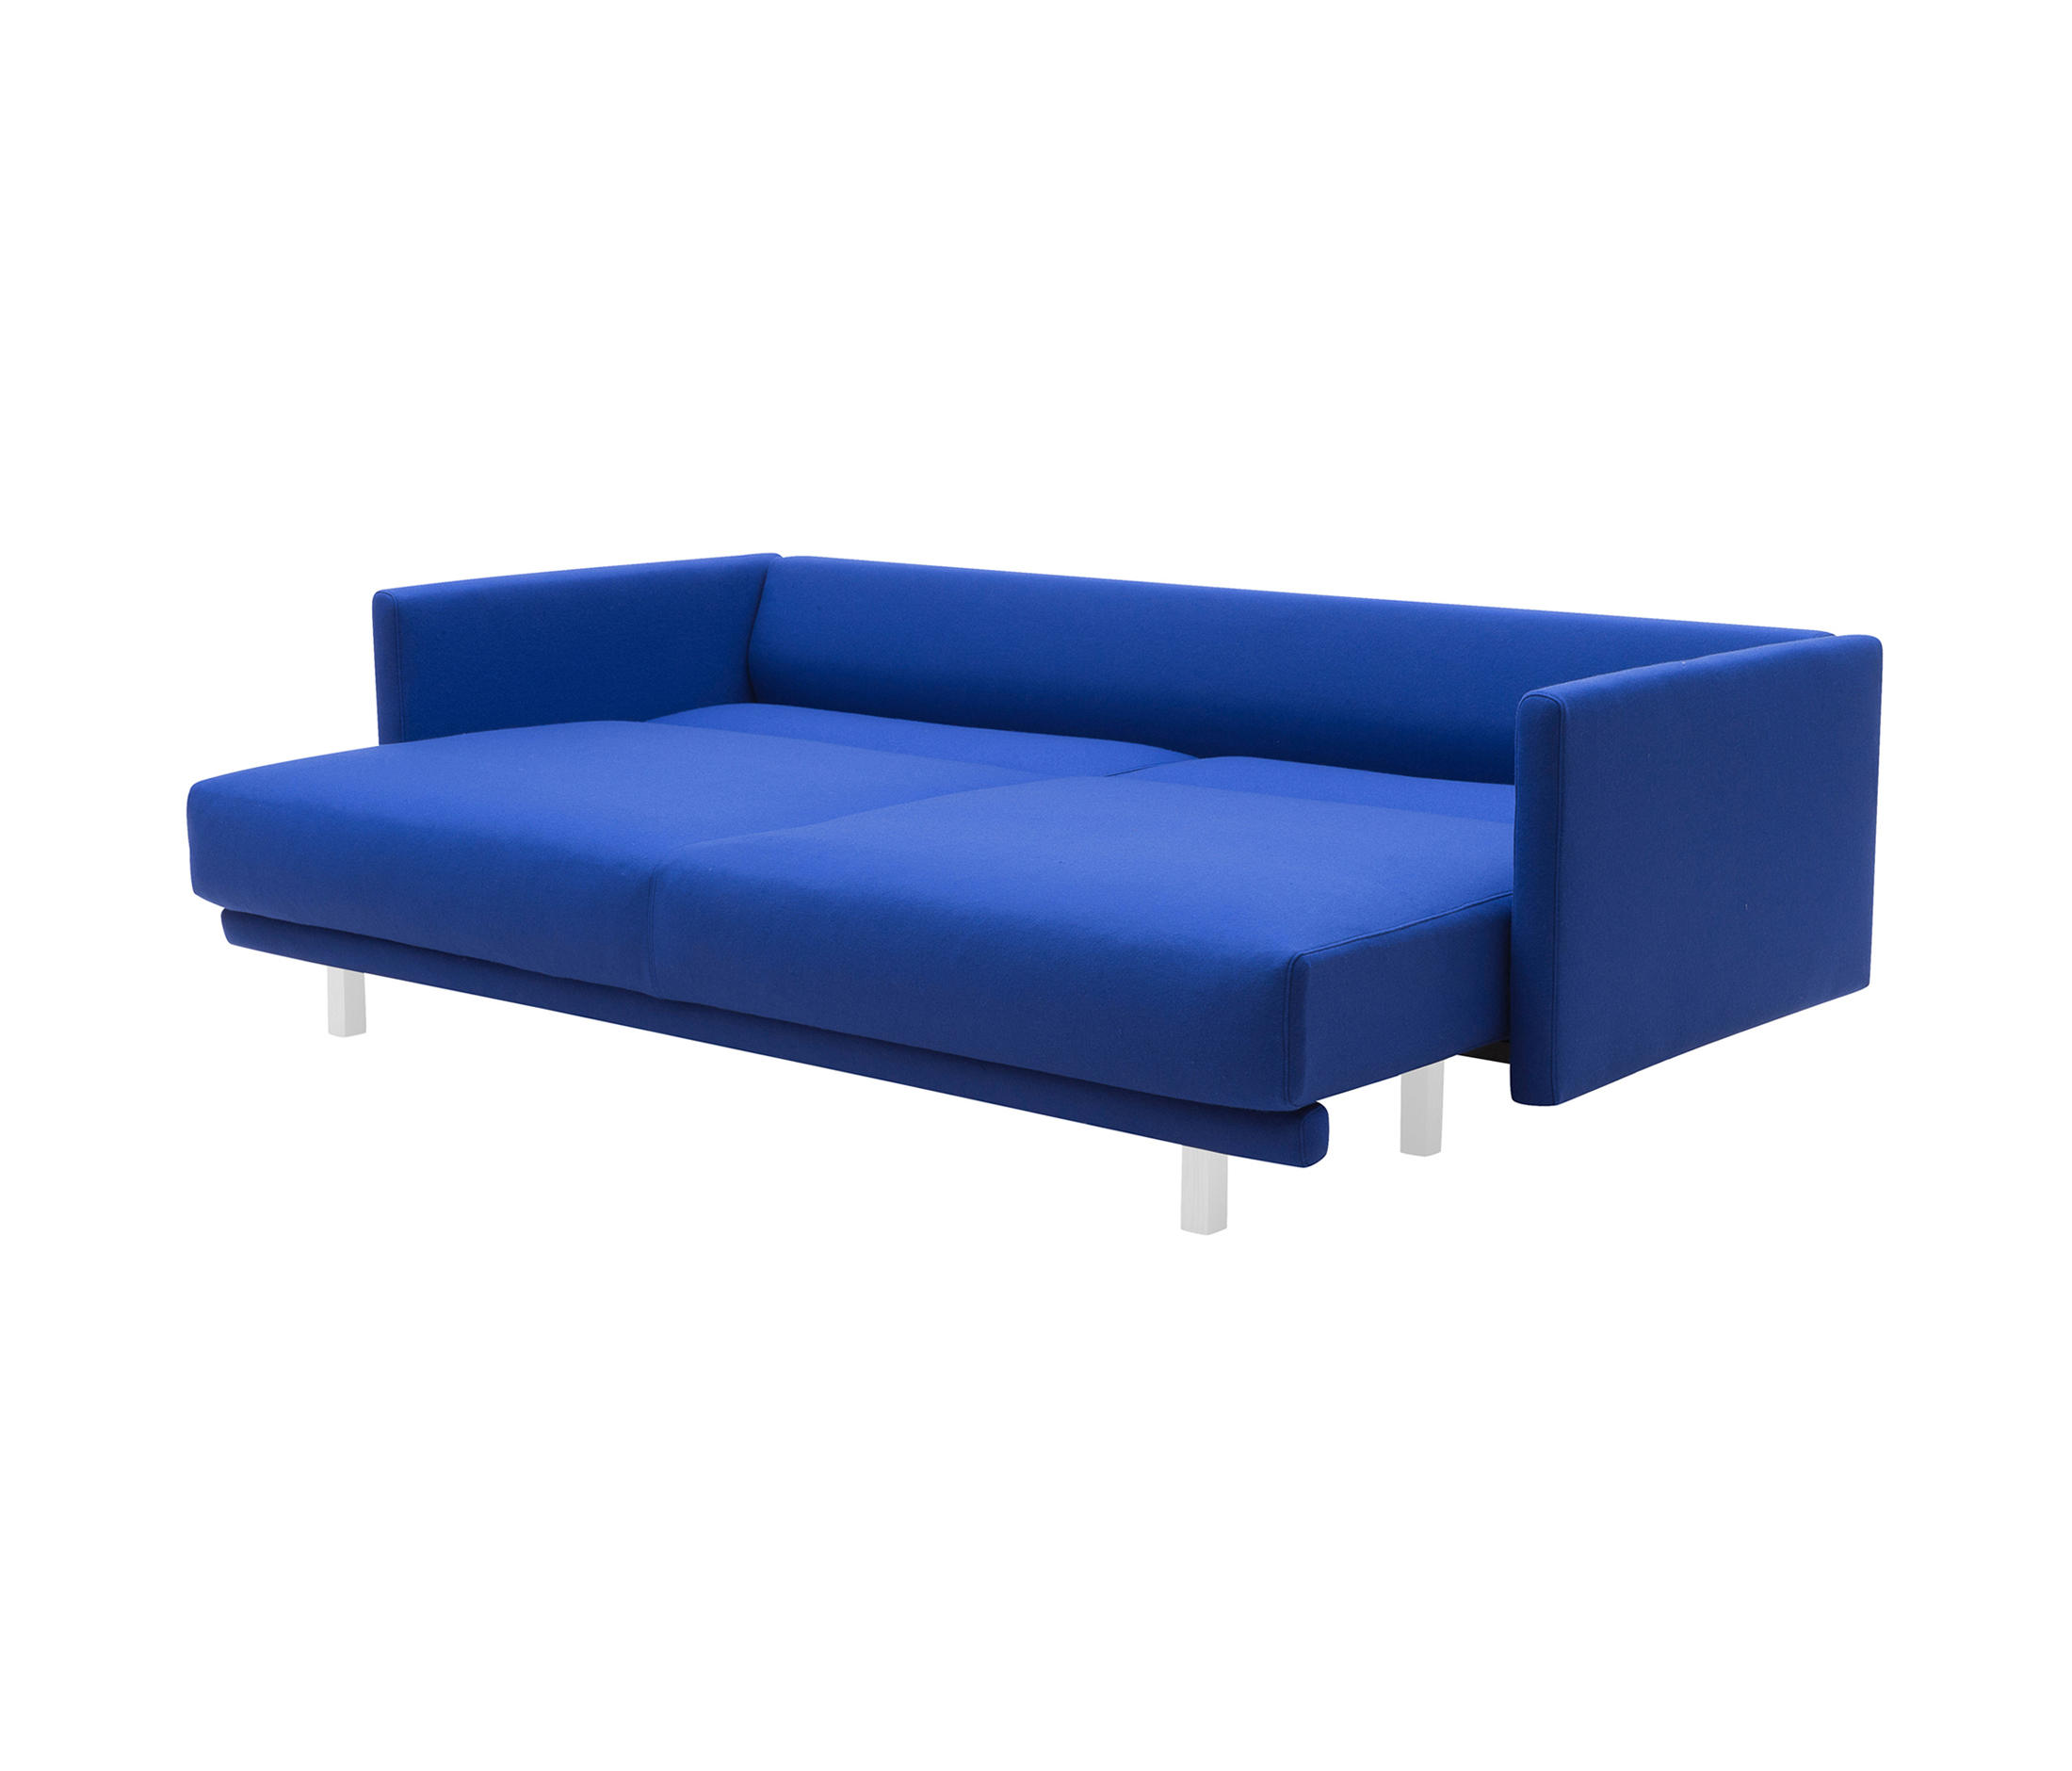 Softline Schlafsofa Meghan Sofas From Softline A S Architonic